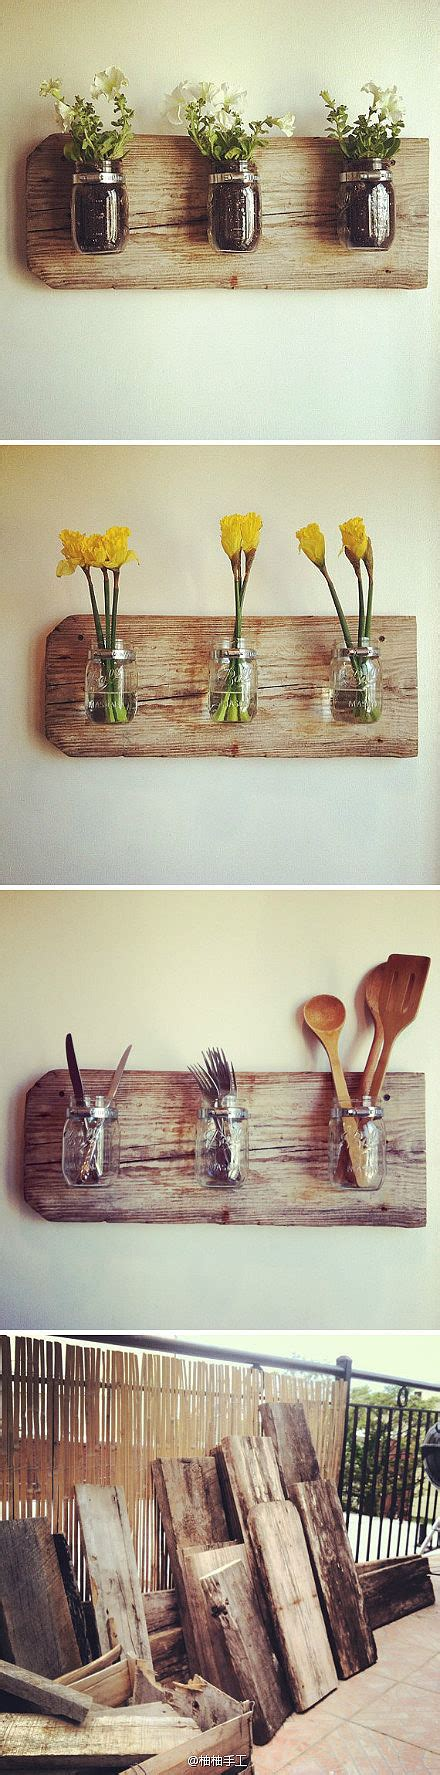 Diy Wood Home Decor with Diy Jar Reclaimed Wood Decor All Gifts Considered